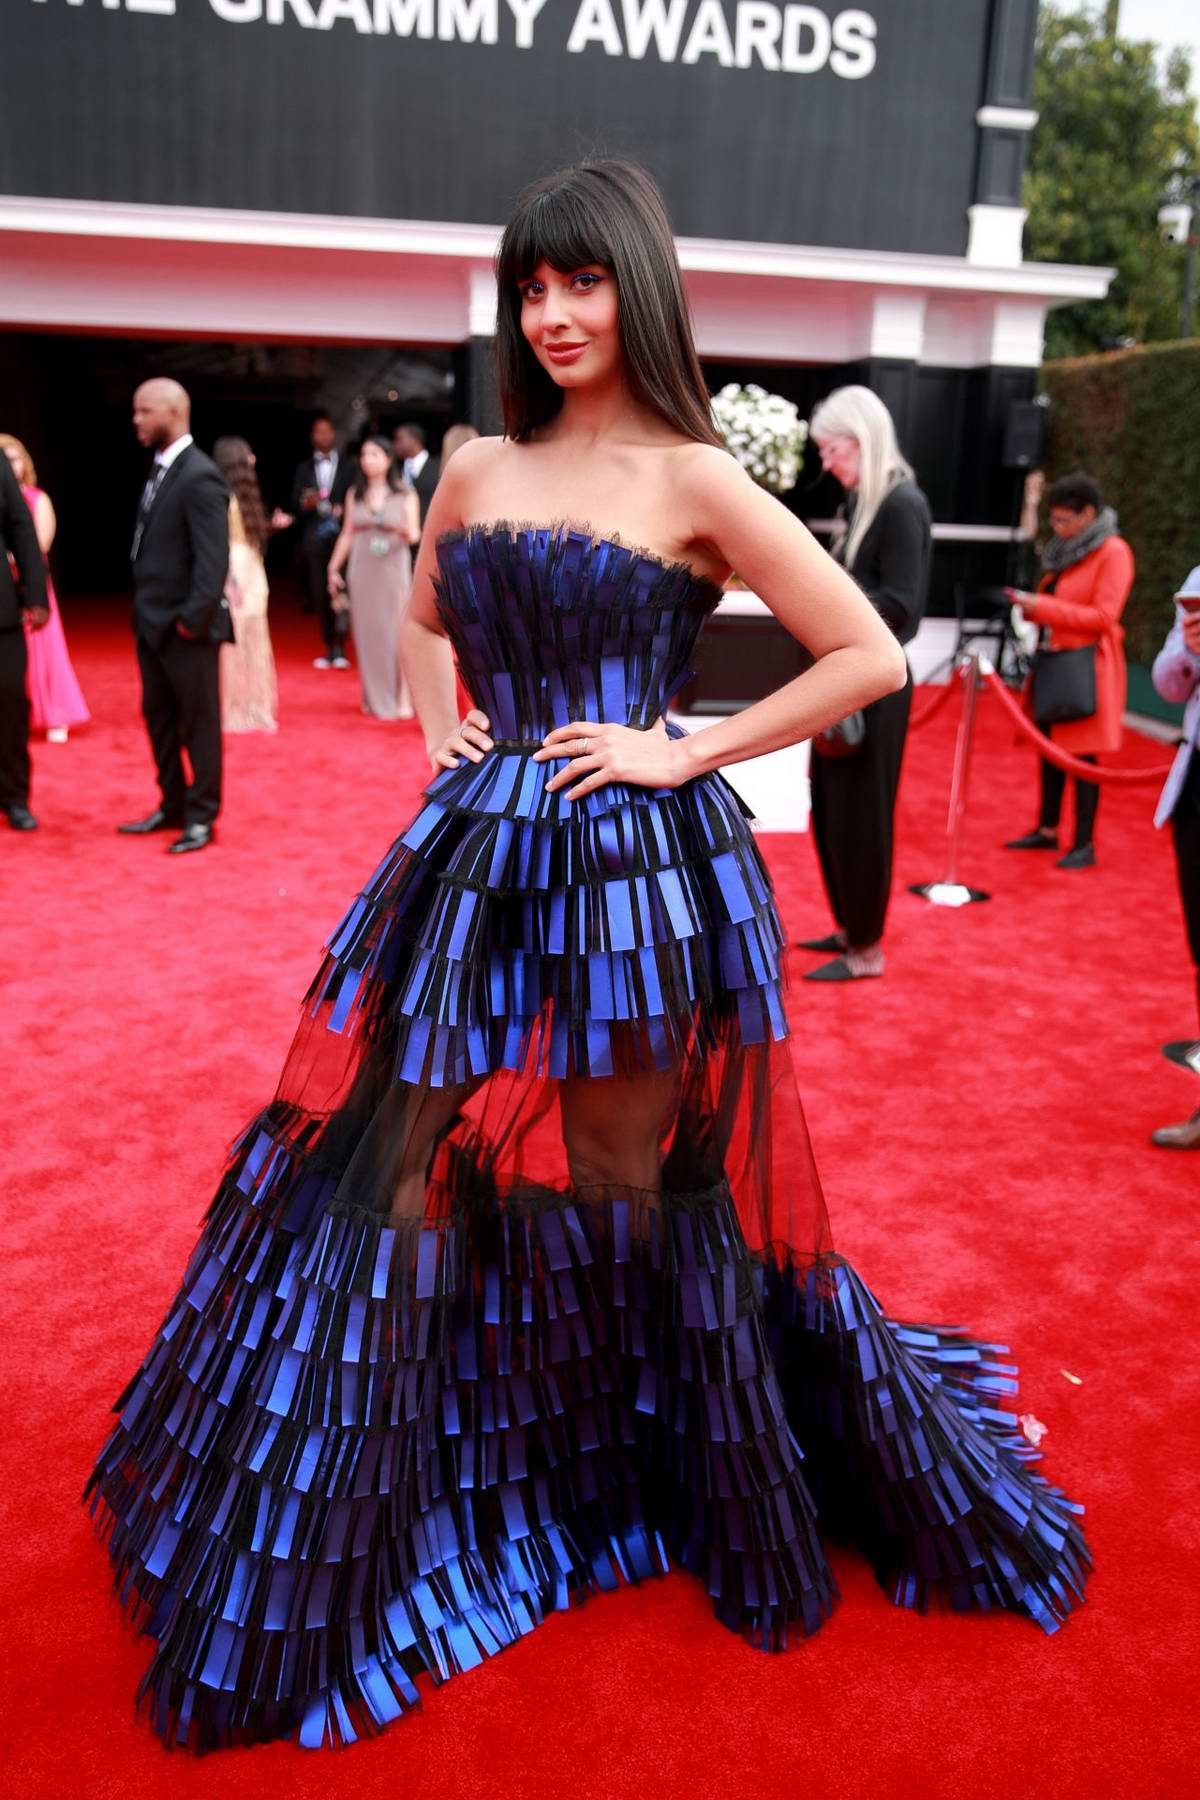 Jameela Jamil attends the 62nd Annual Grammy Awards at Staples Center in Los Angeles